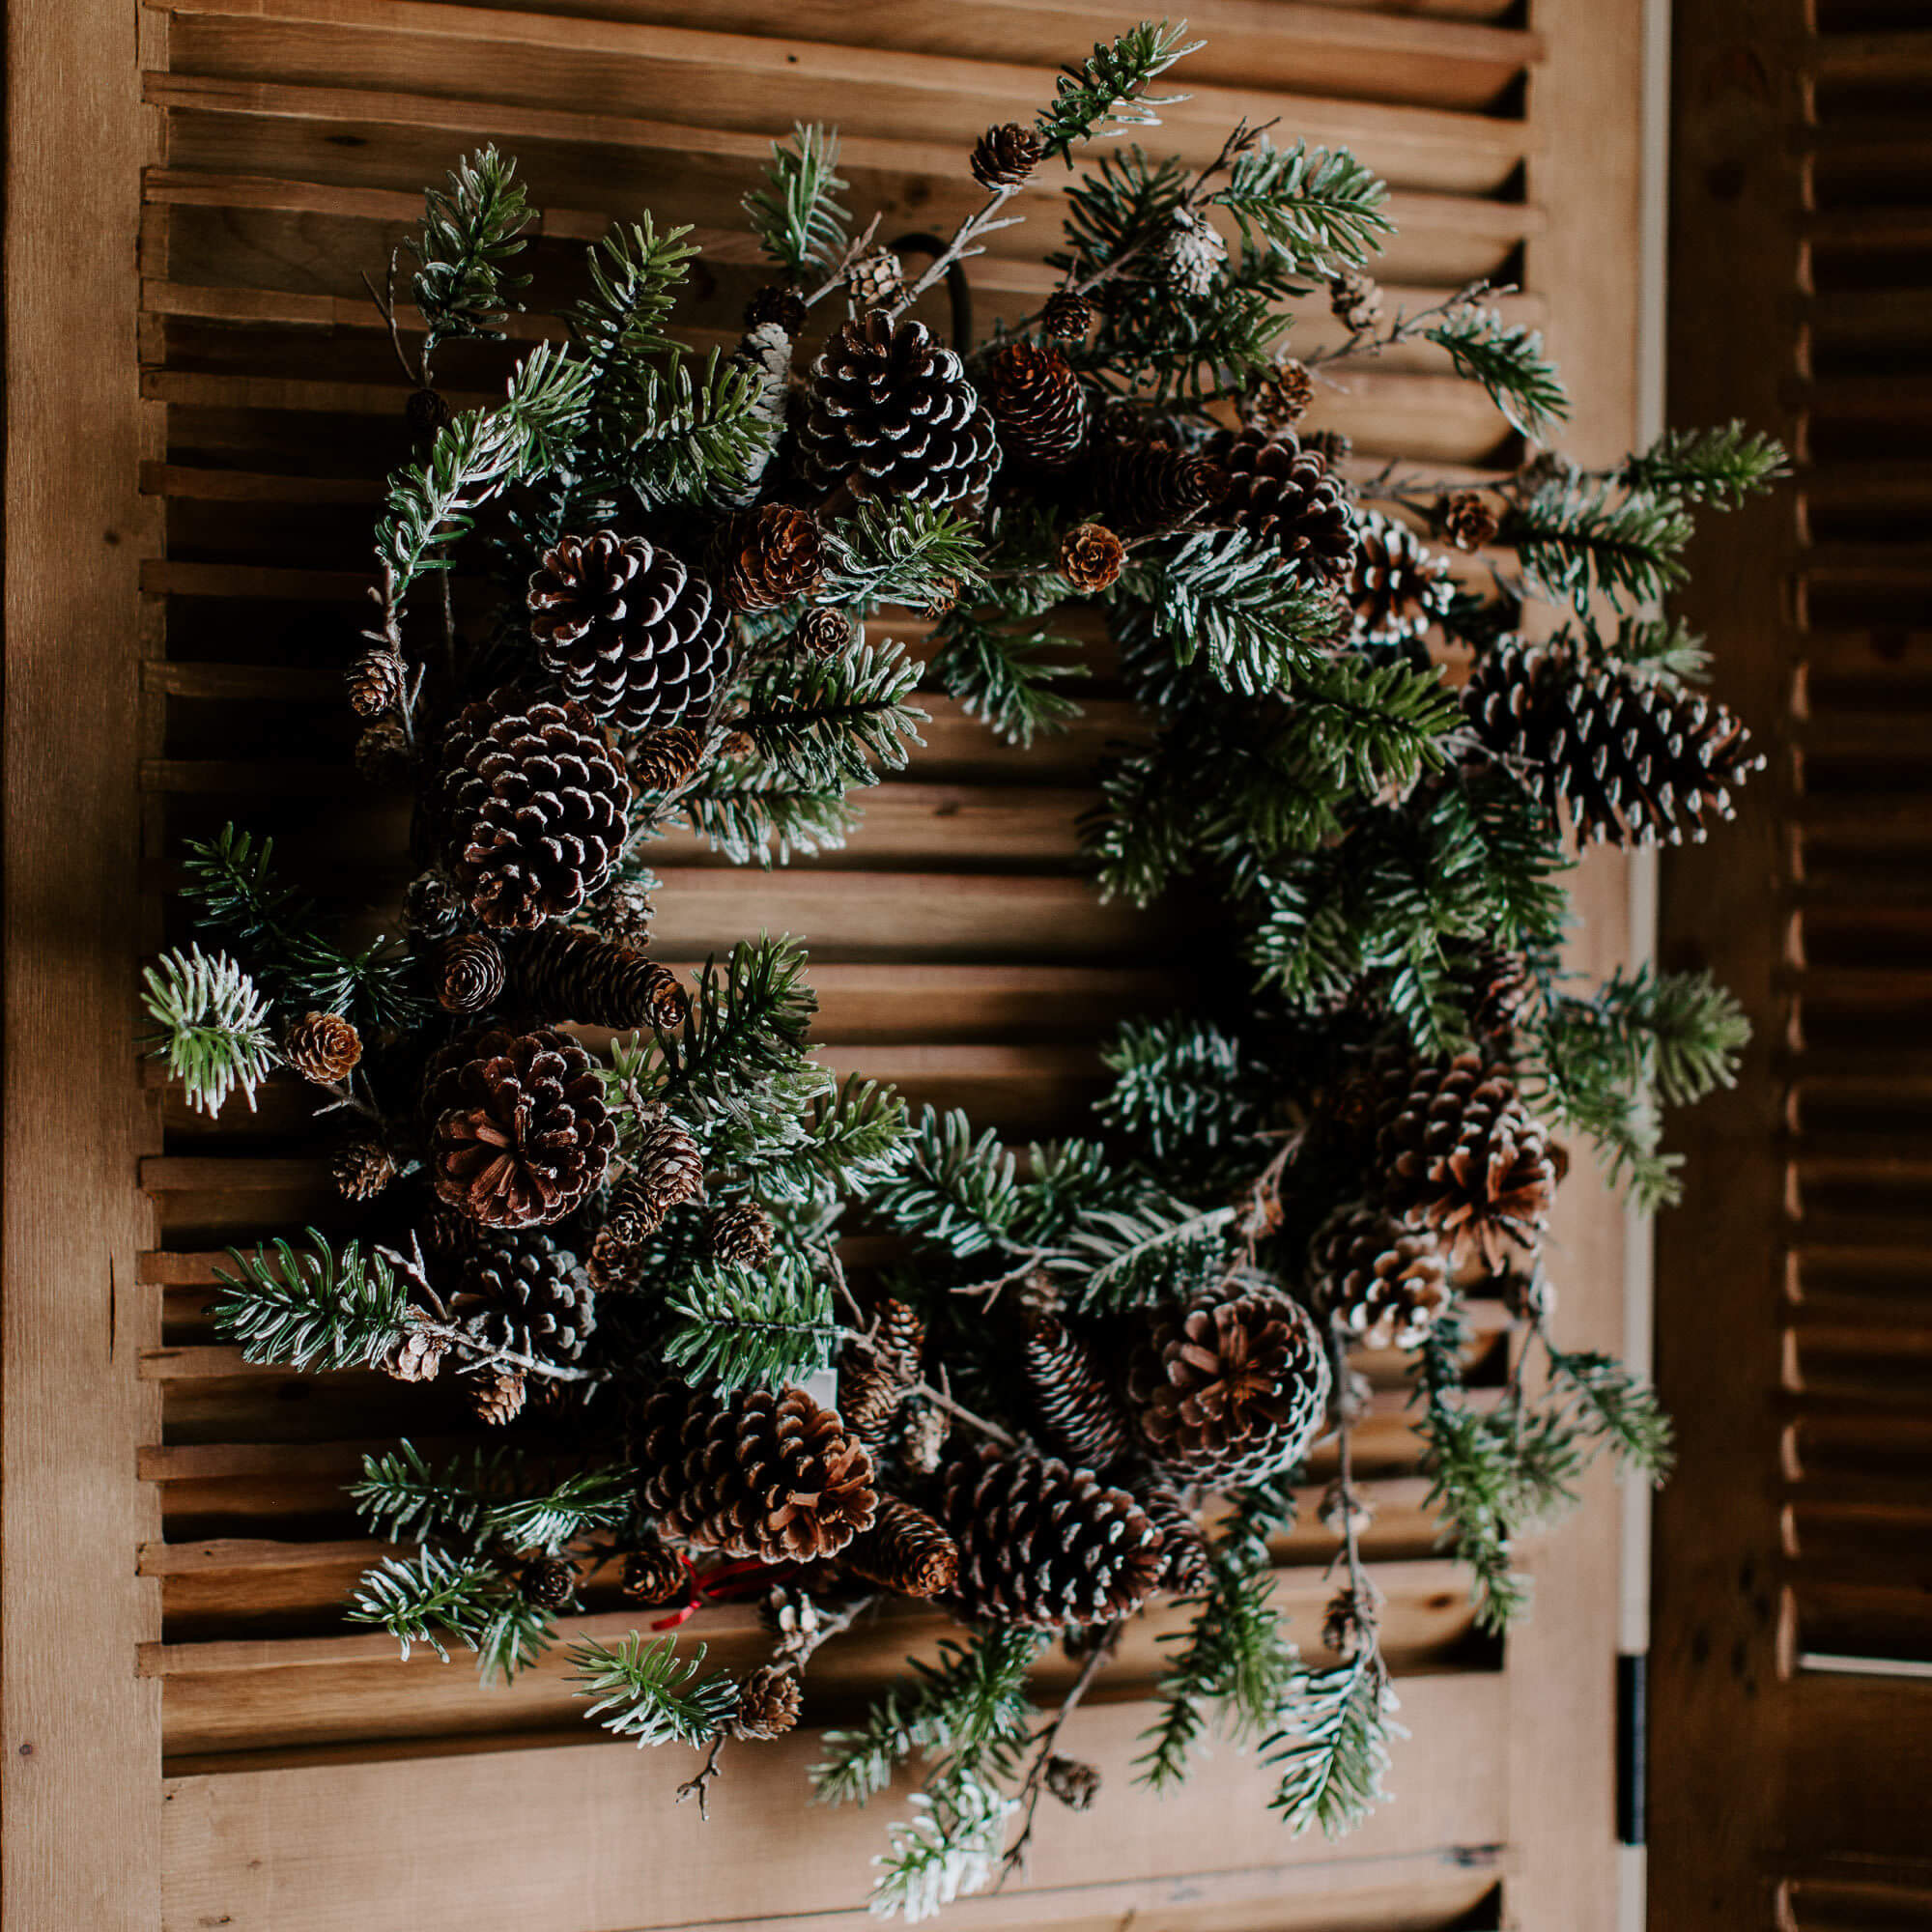 A full and lush 28 inch diameter, natural-looking faux spruce wreath loaded with pinecones of different sizes all dusted in faux snow perfect for holiday decorating